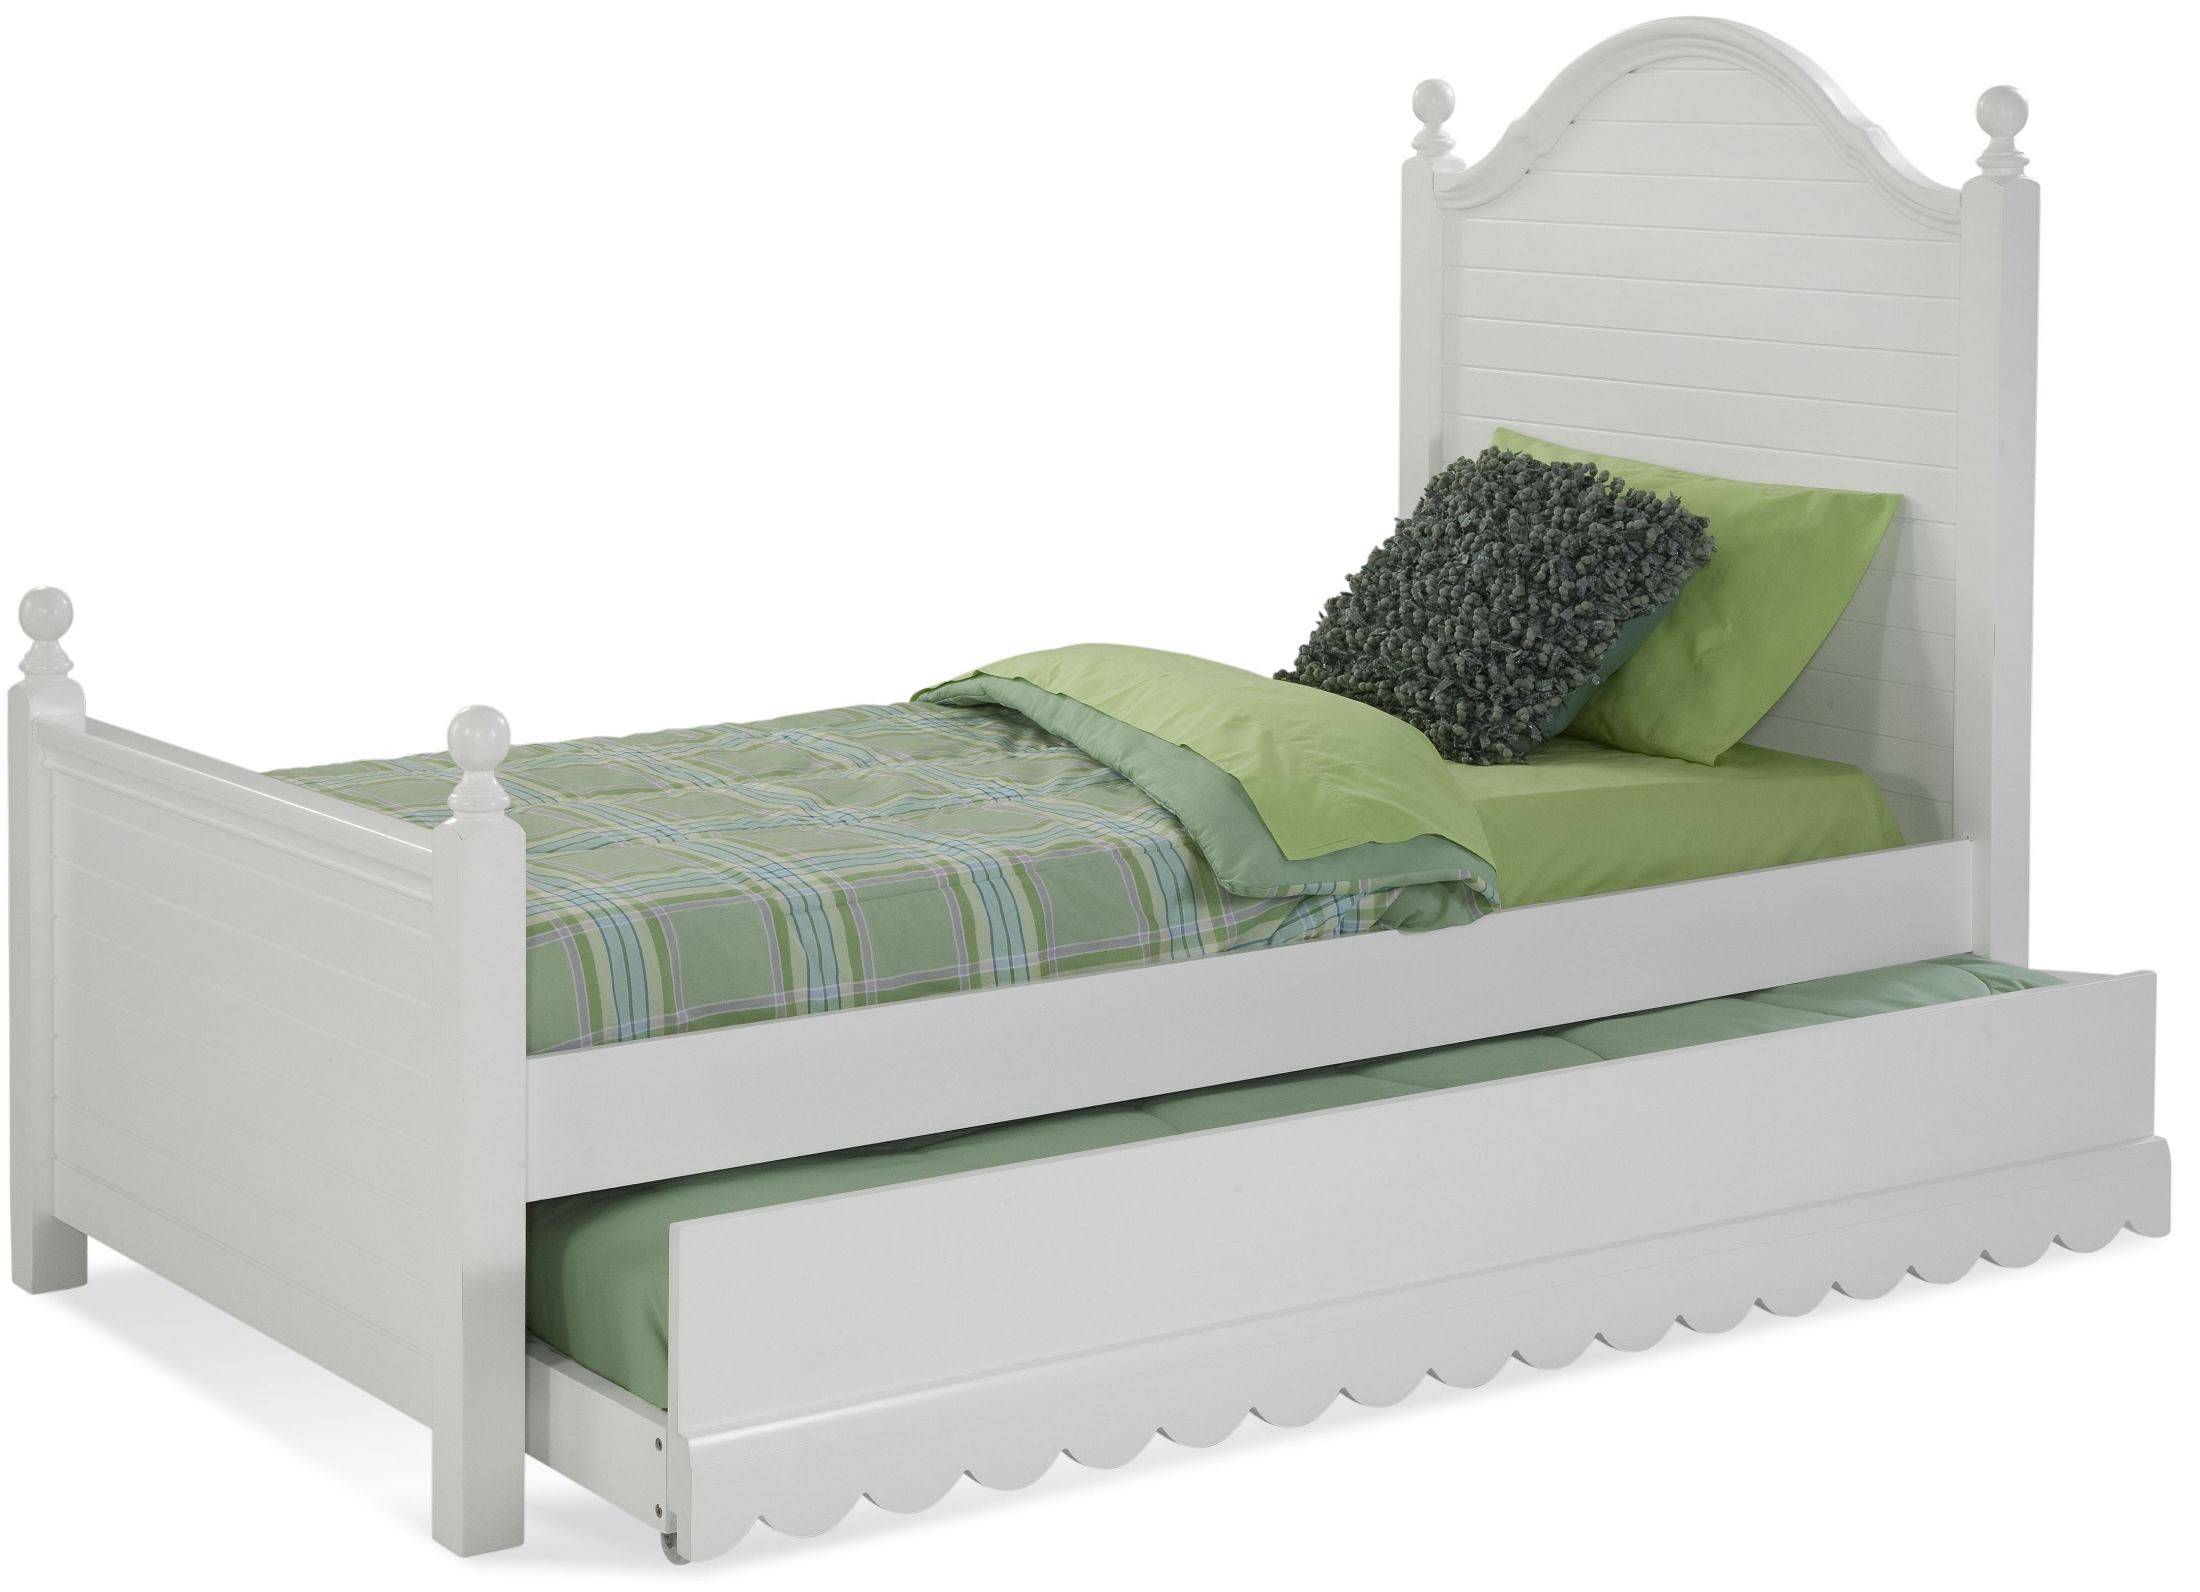 Jasmine white twin poster bed 8300 970 875 american for White twin beds for sale